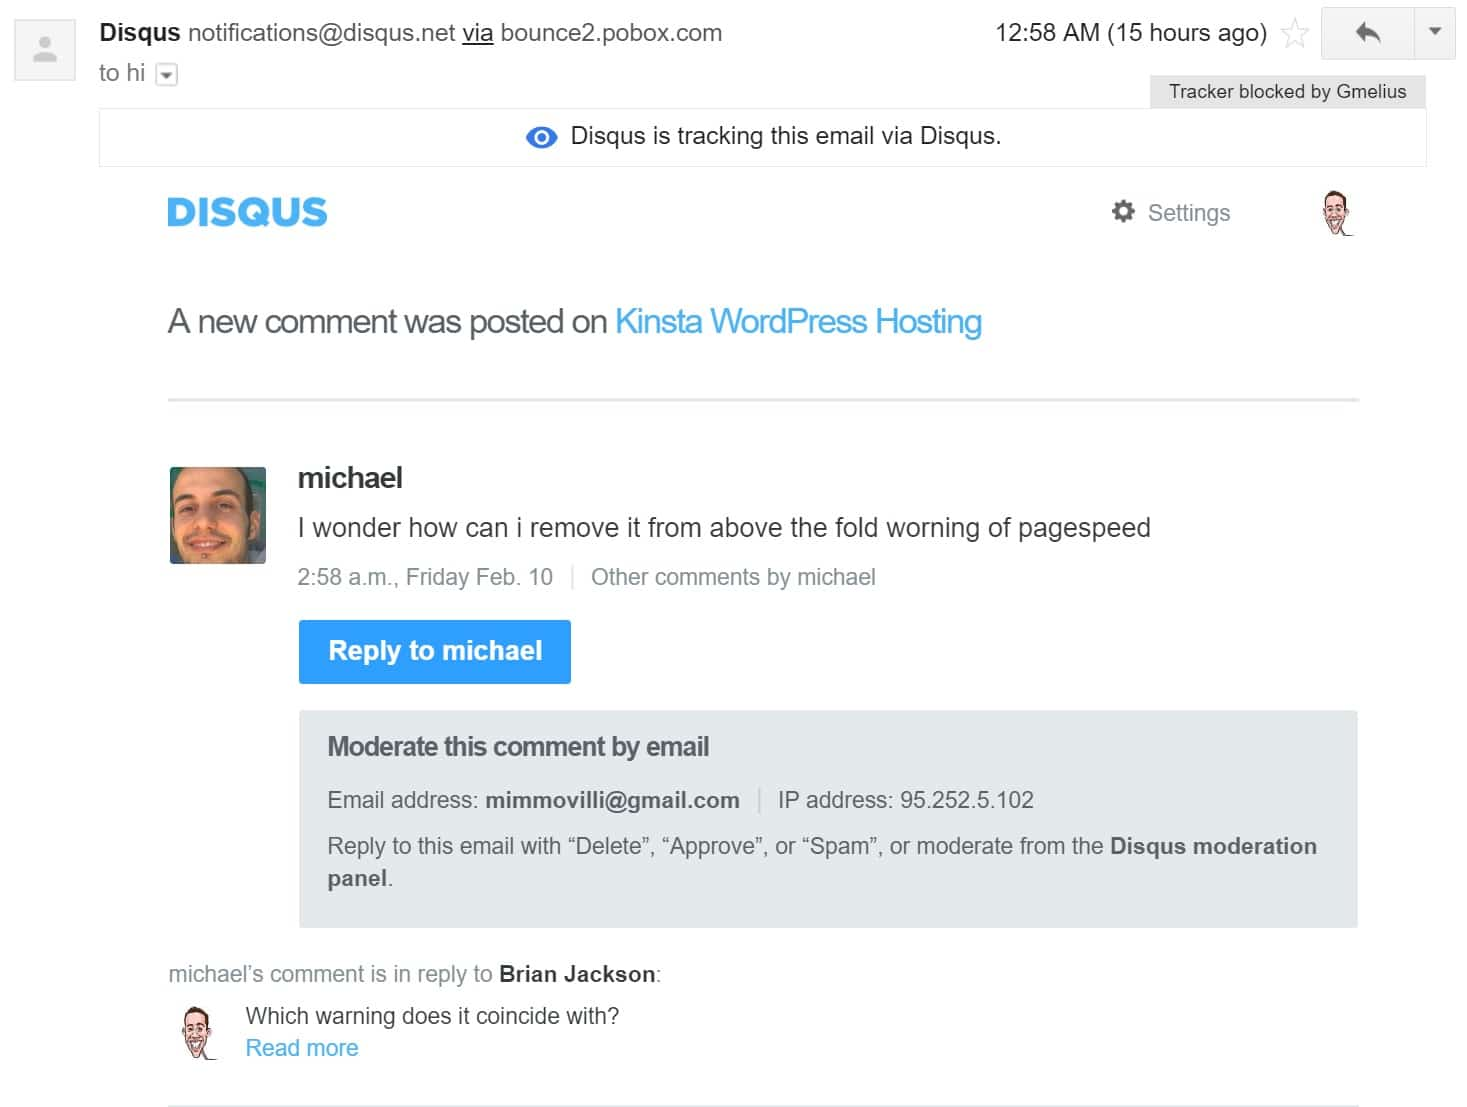 disqus email notification